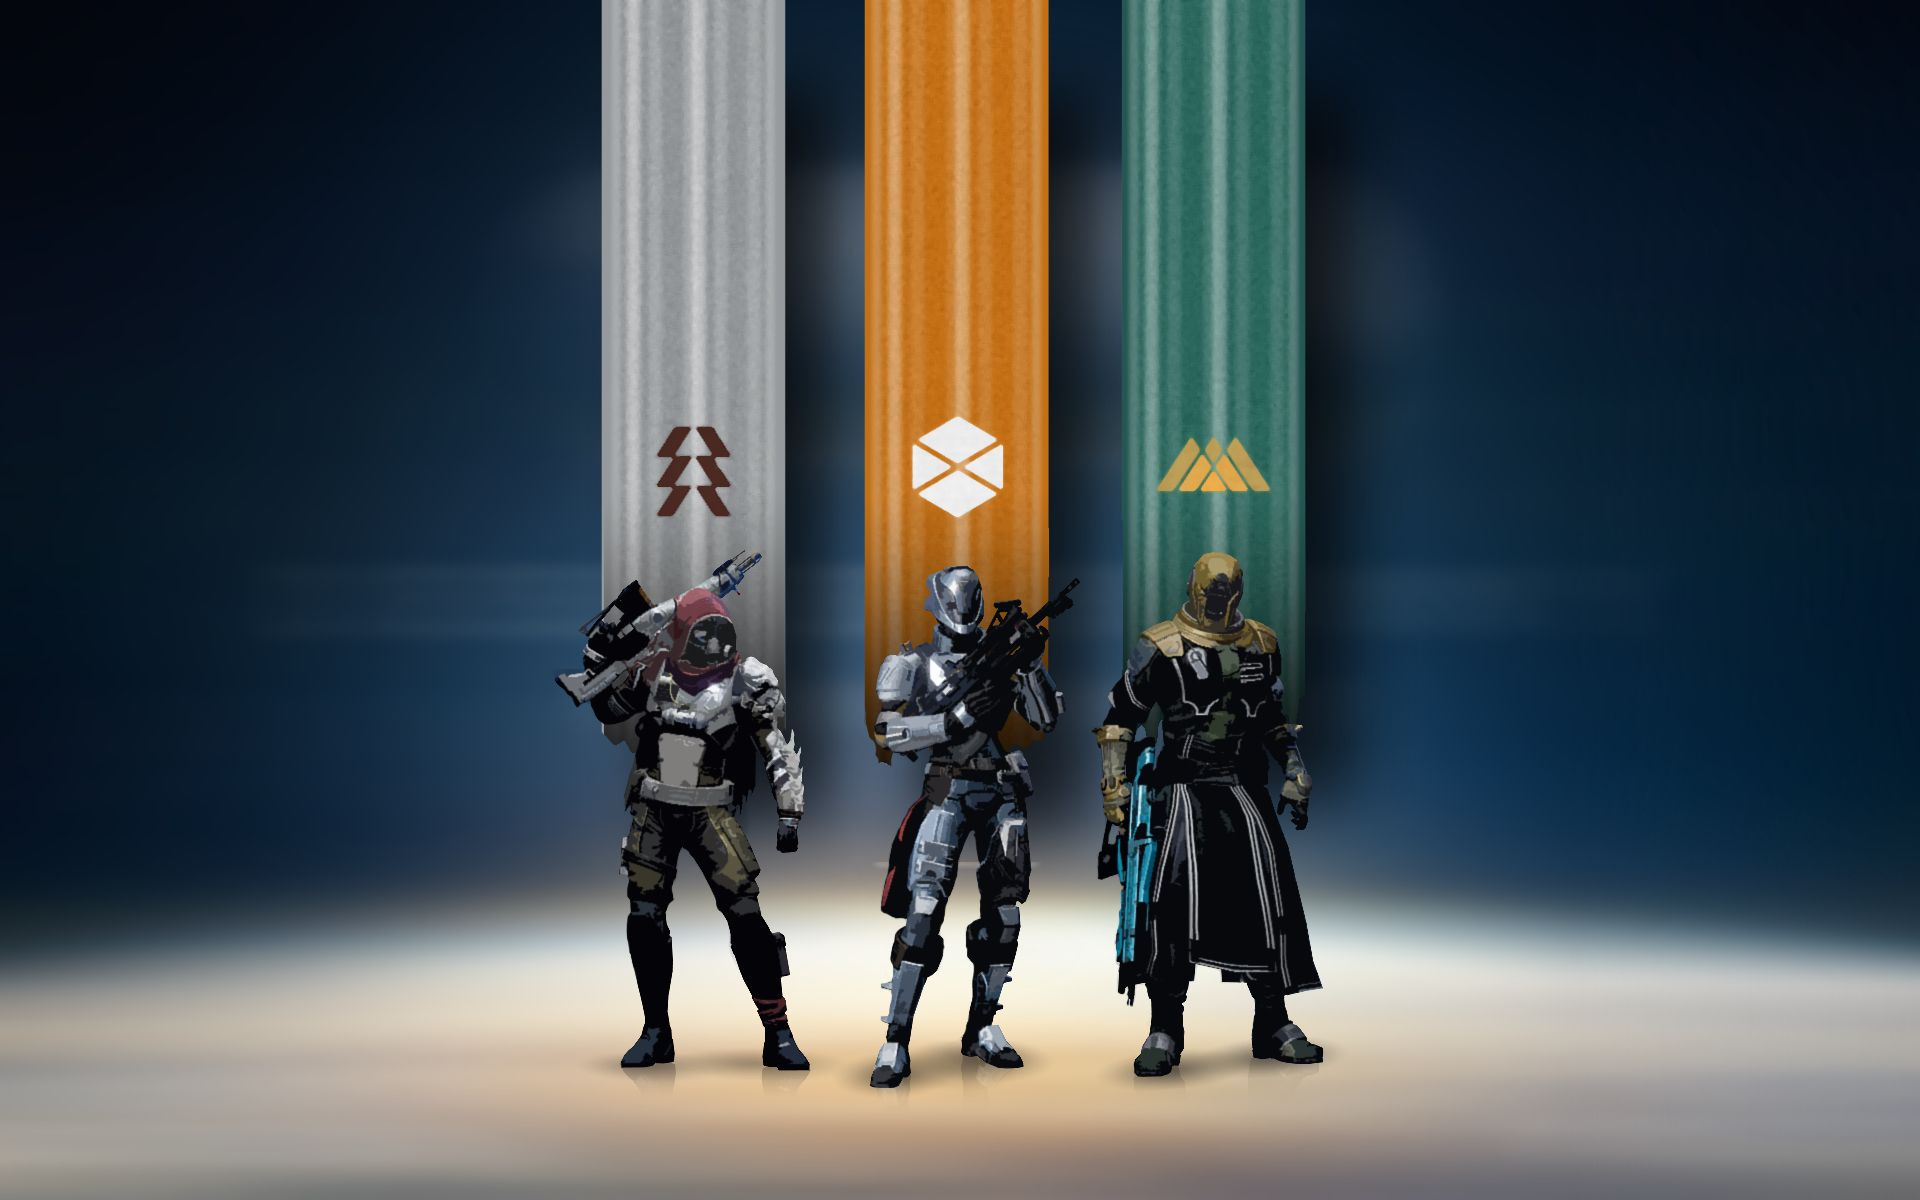 Simple Wallpaper High Quality Destiny - 46a7aacd6b1add2cc9f00c58e8f2303c  Perfect Image Reference_34926.jpg